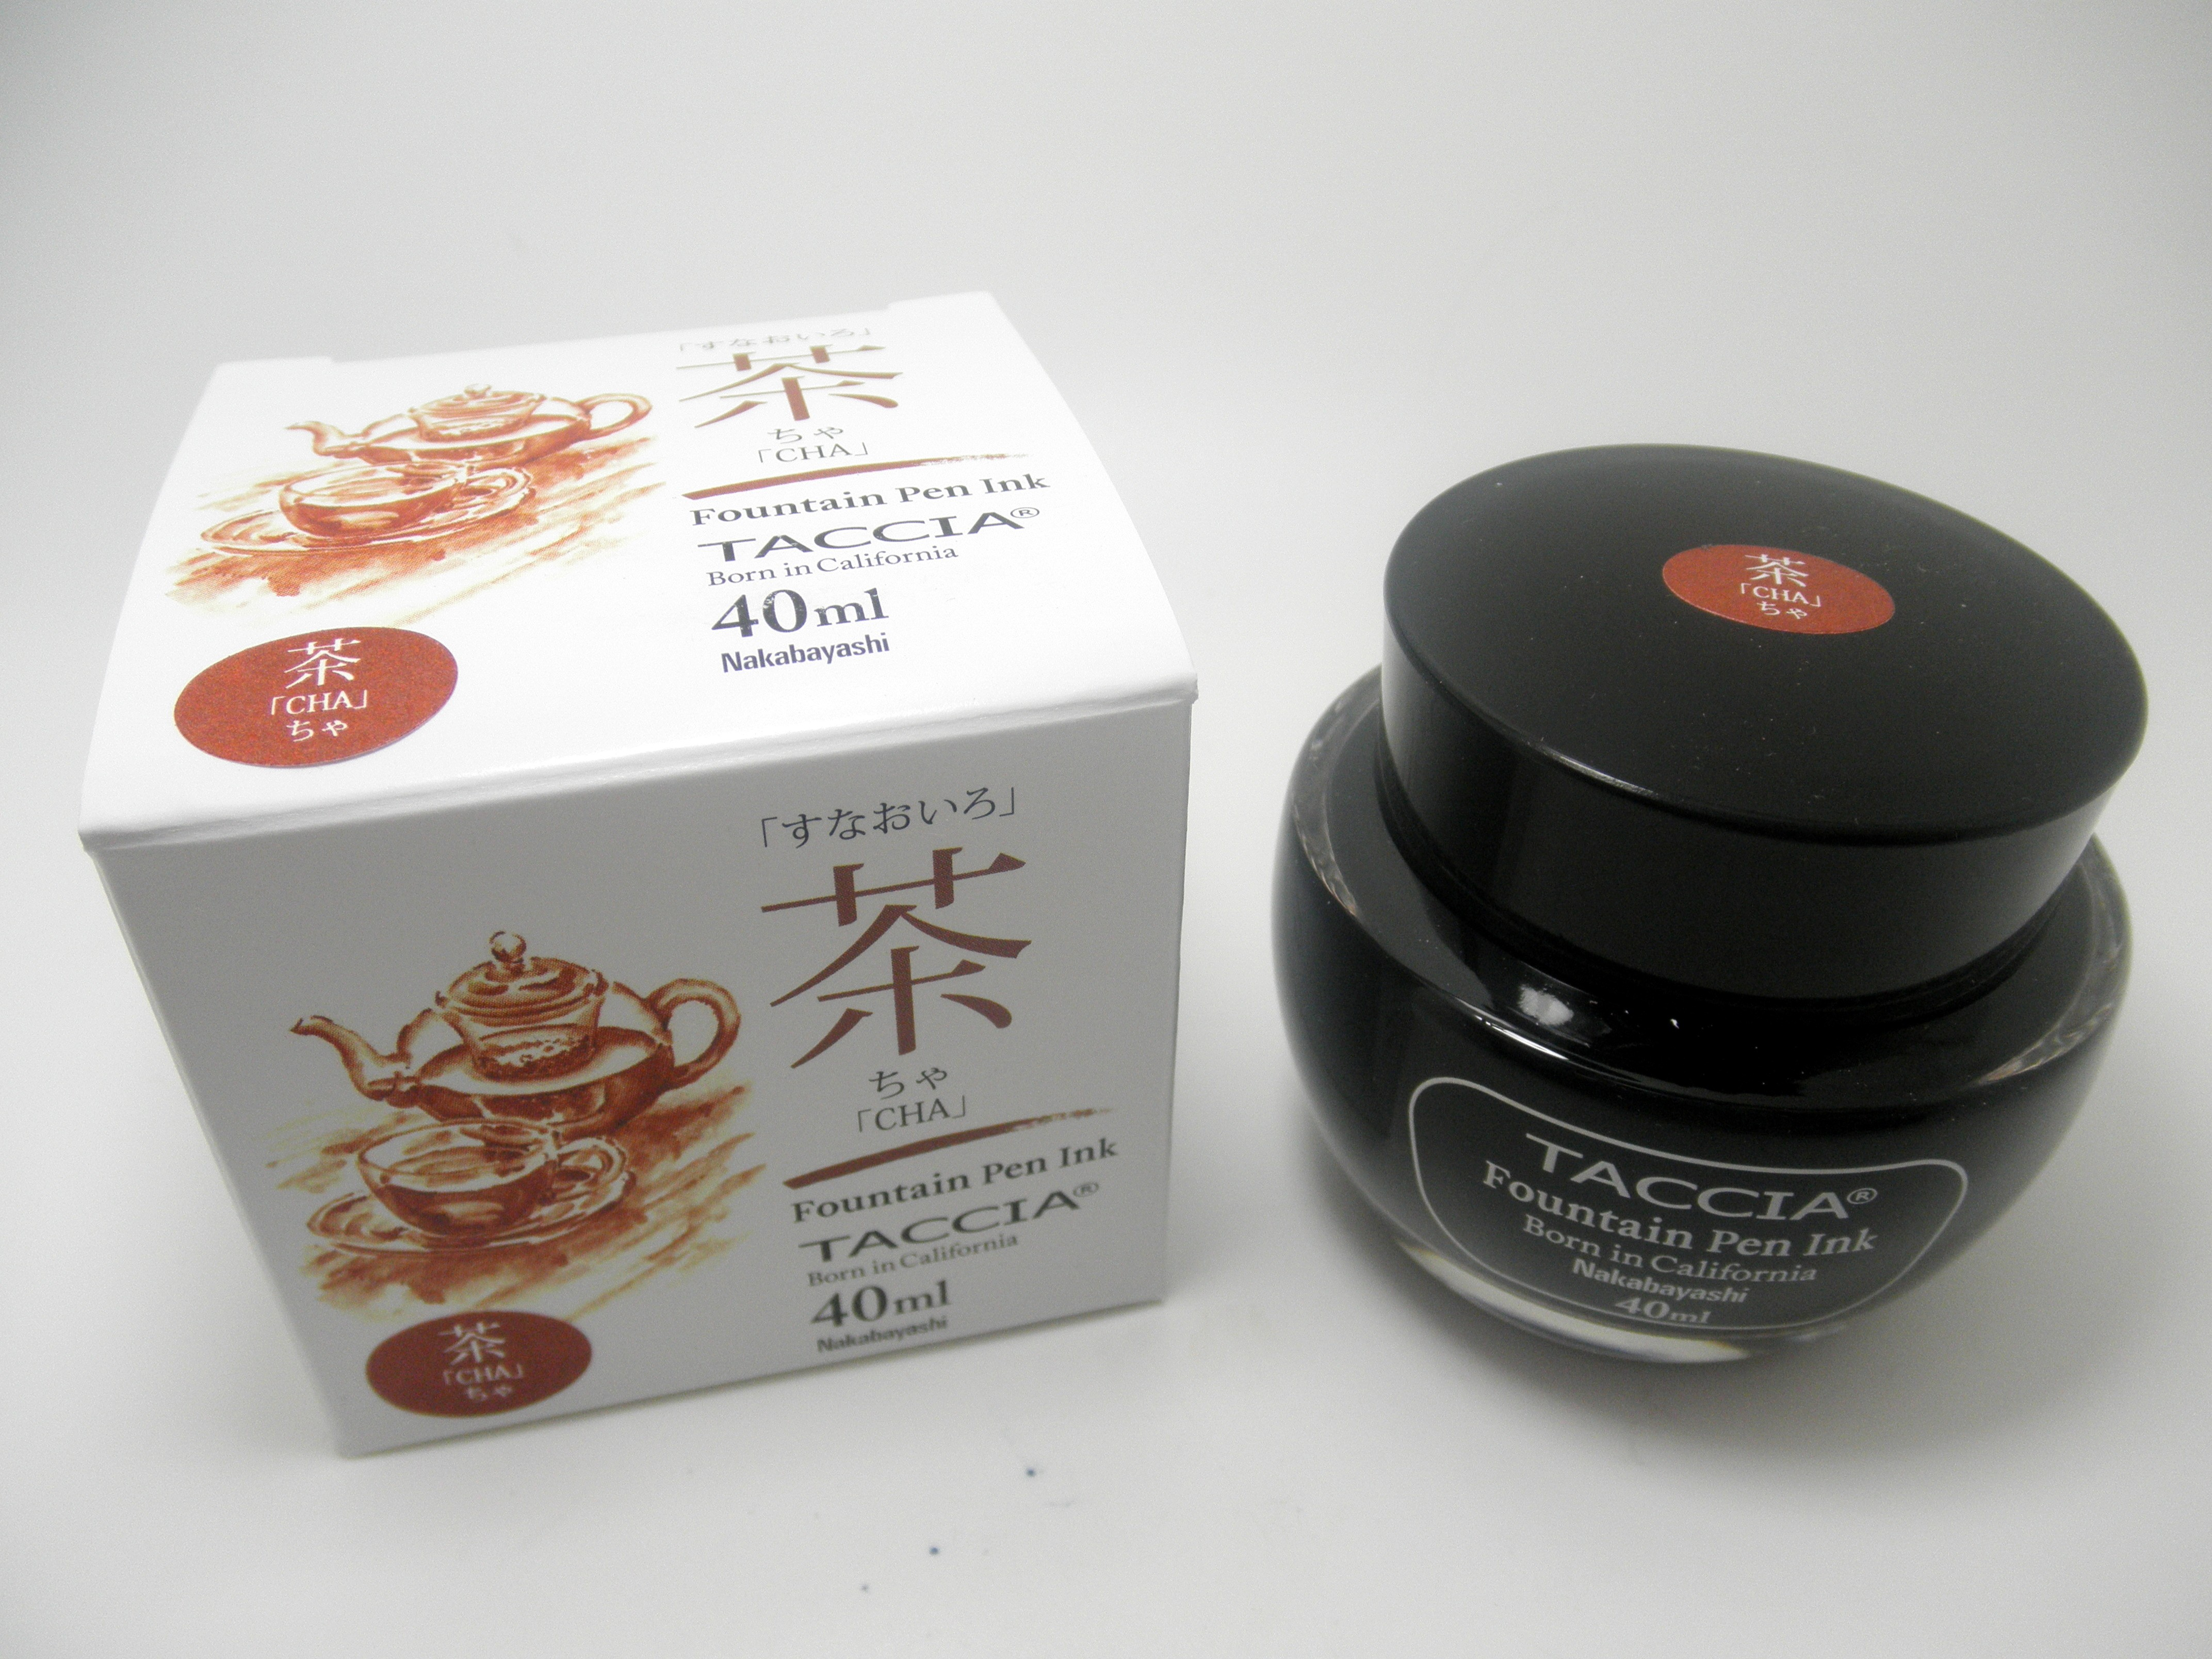 Taccia Bottled Ink Cha (Brown)